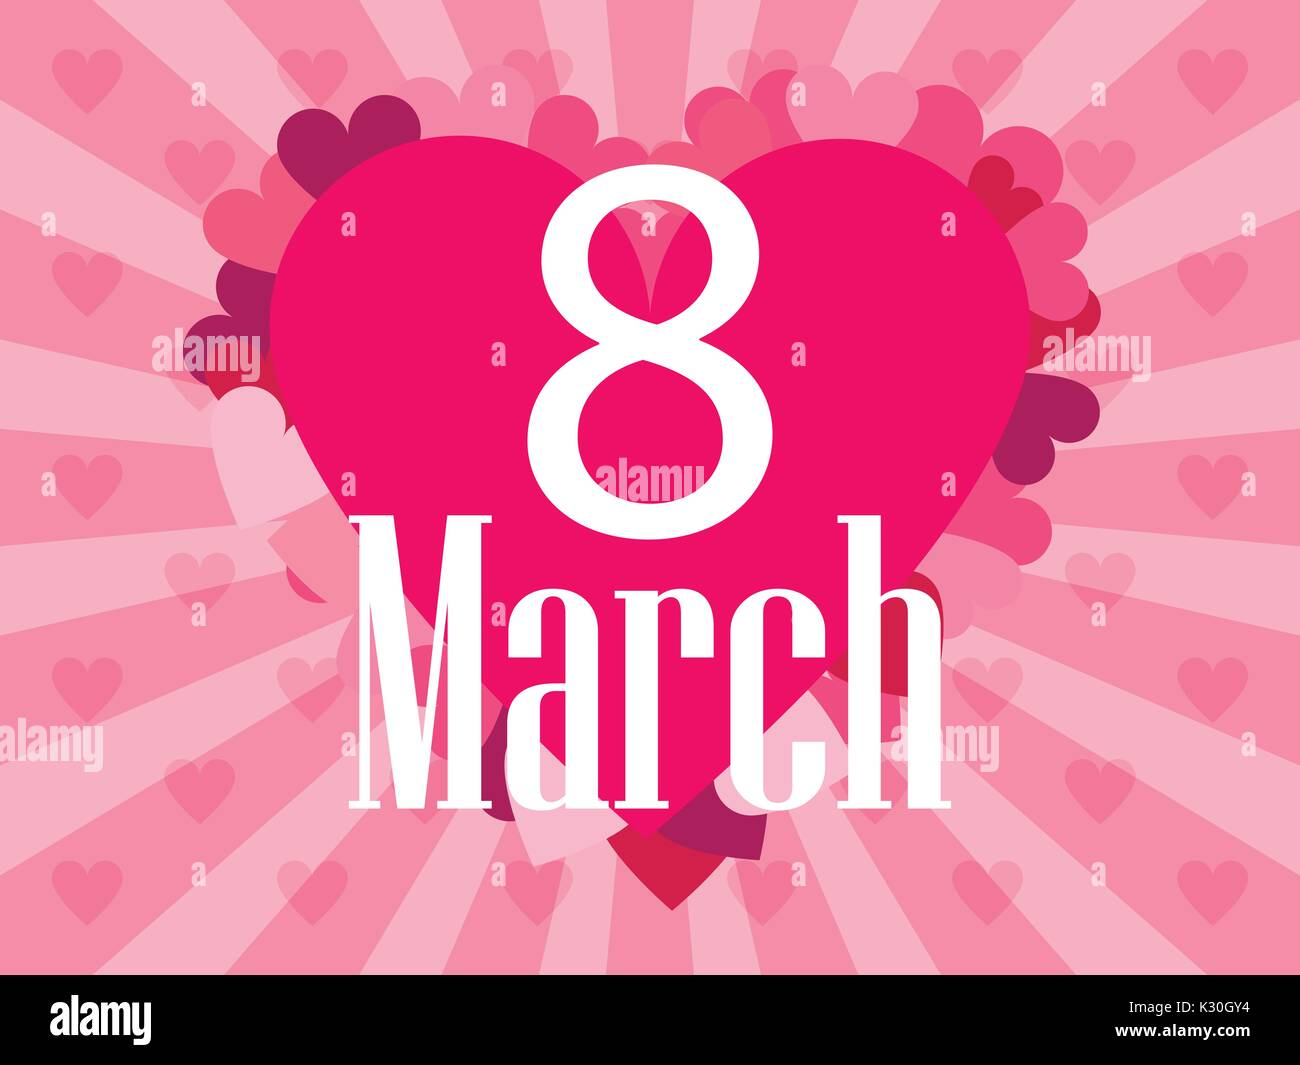 8 March day. International Women's day. Background with rays and heart. Vector illustration - Stock Vector